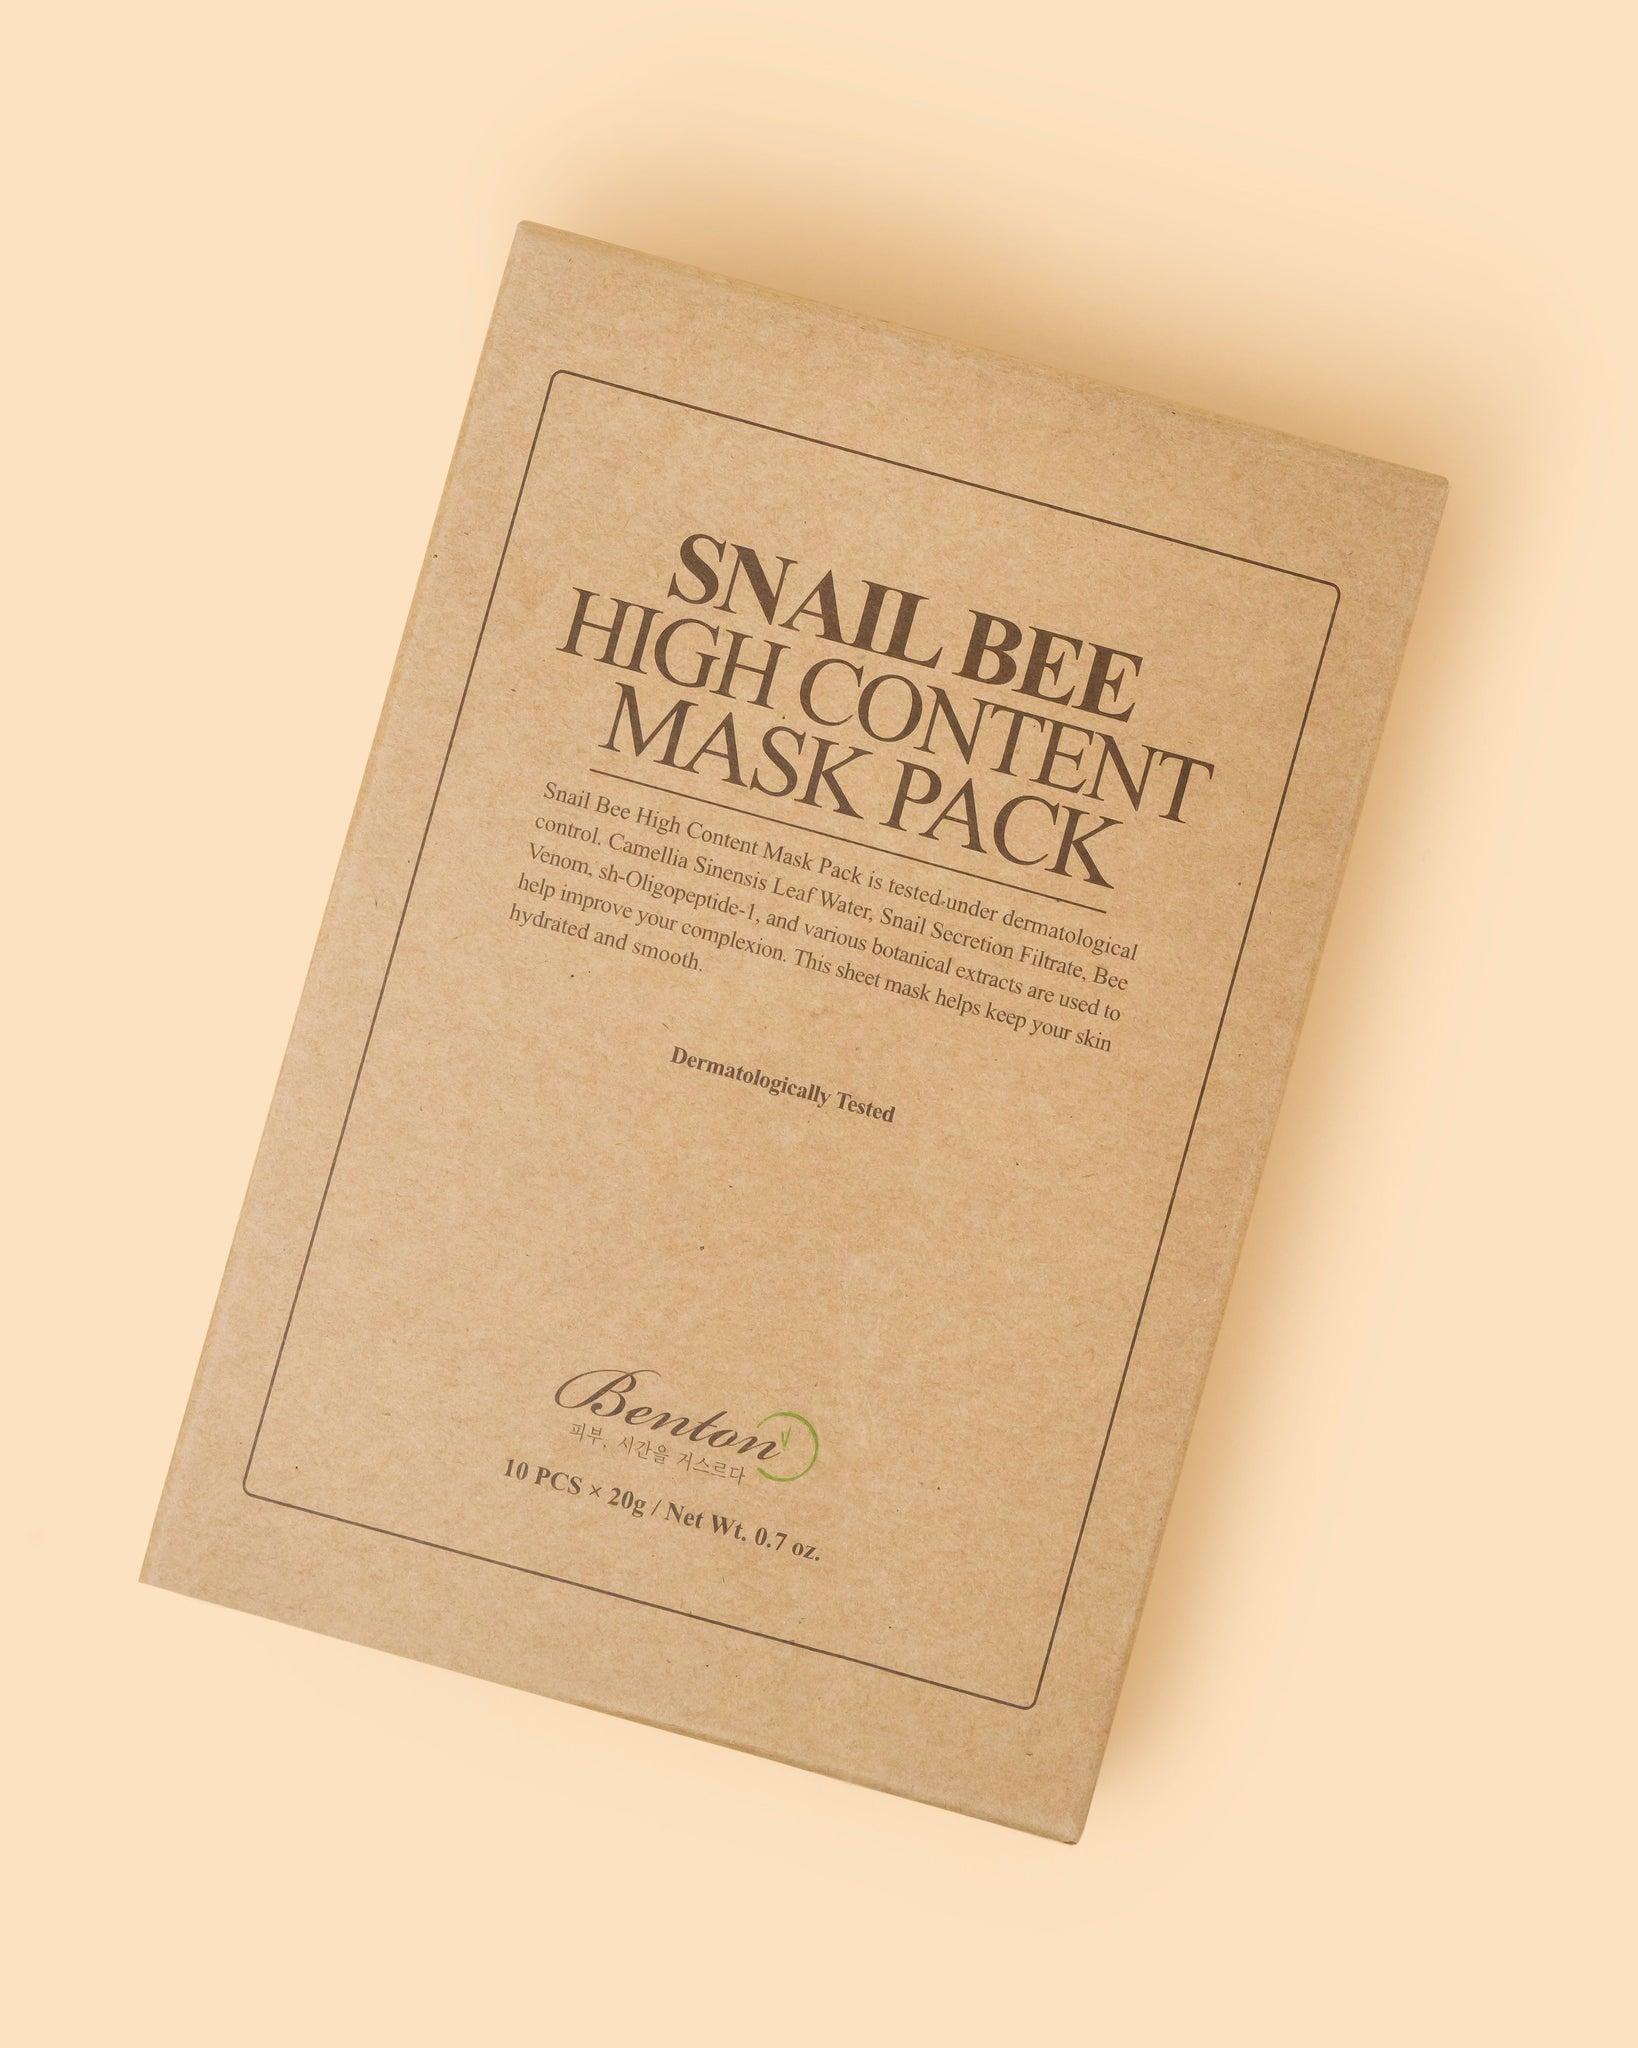 Snail Bee High Content Mask Pack (Box of 10) Product Picture